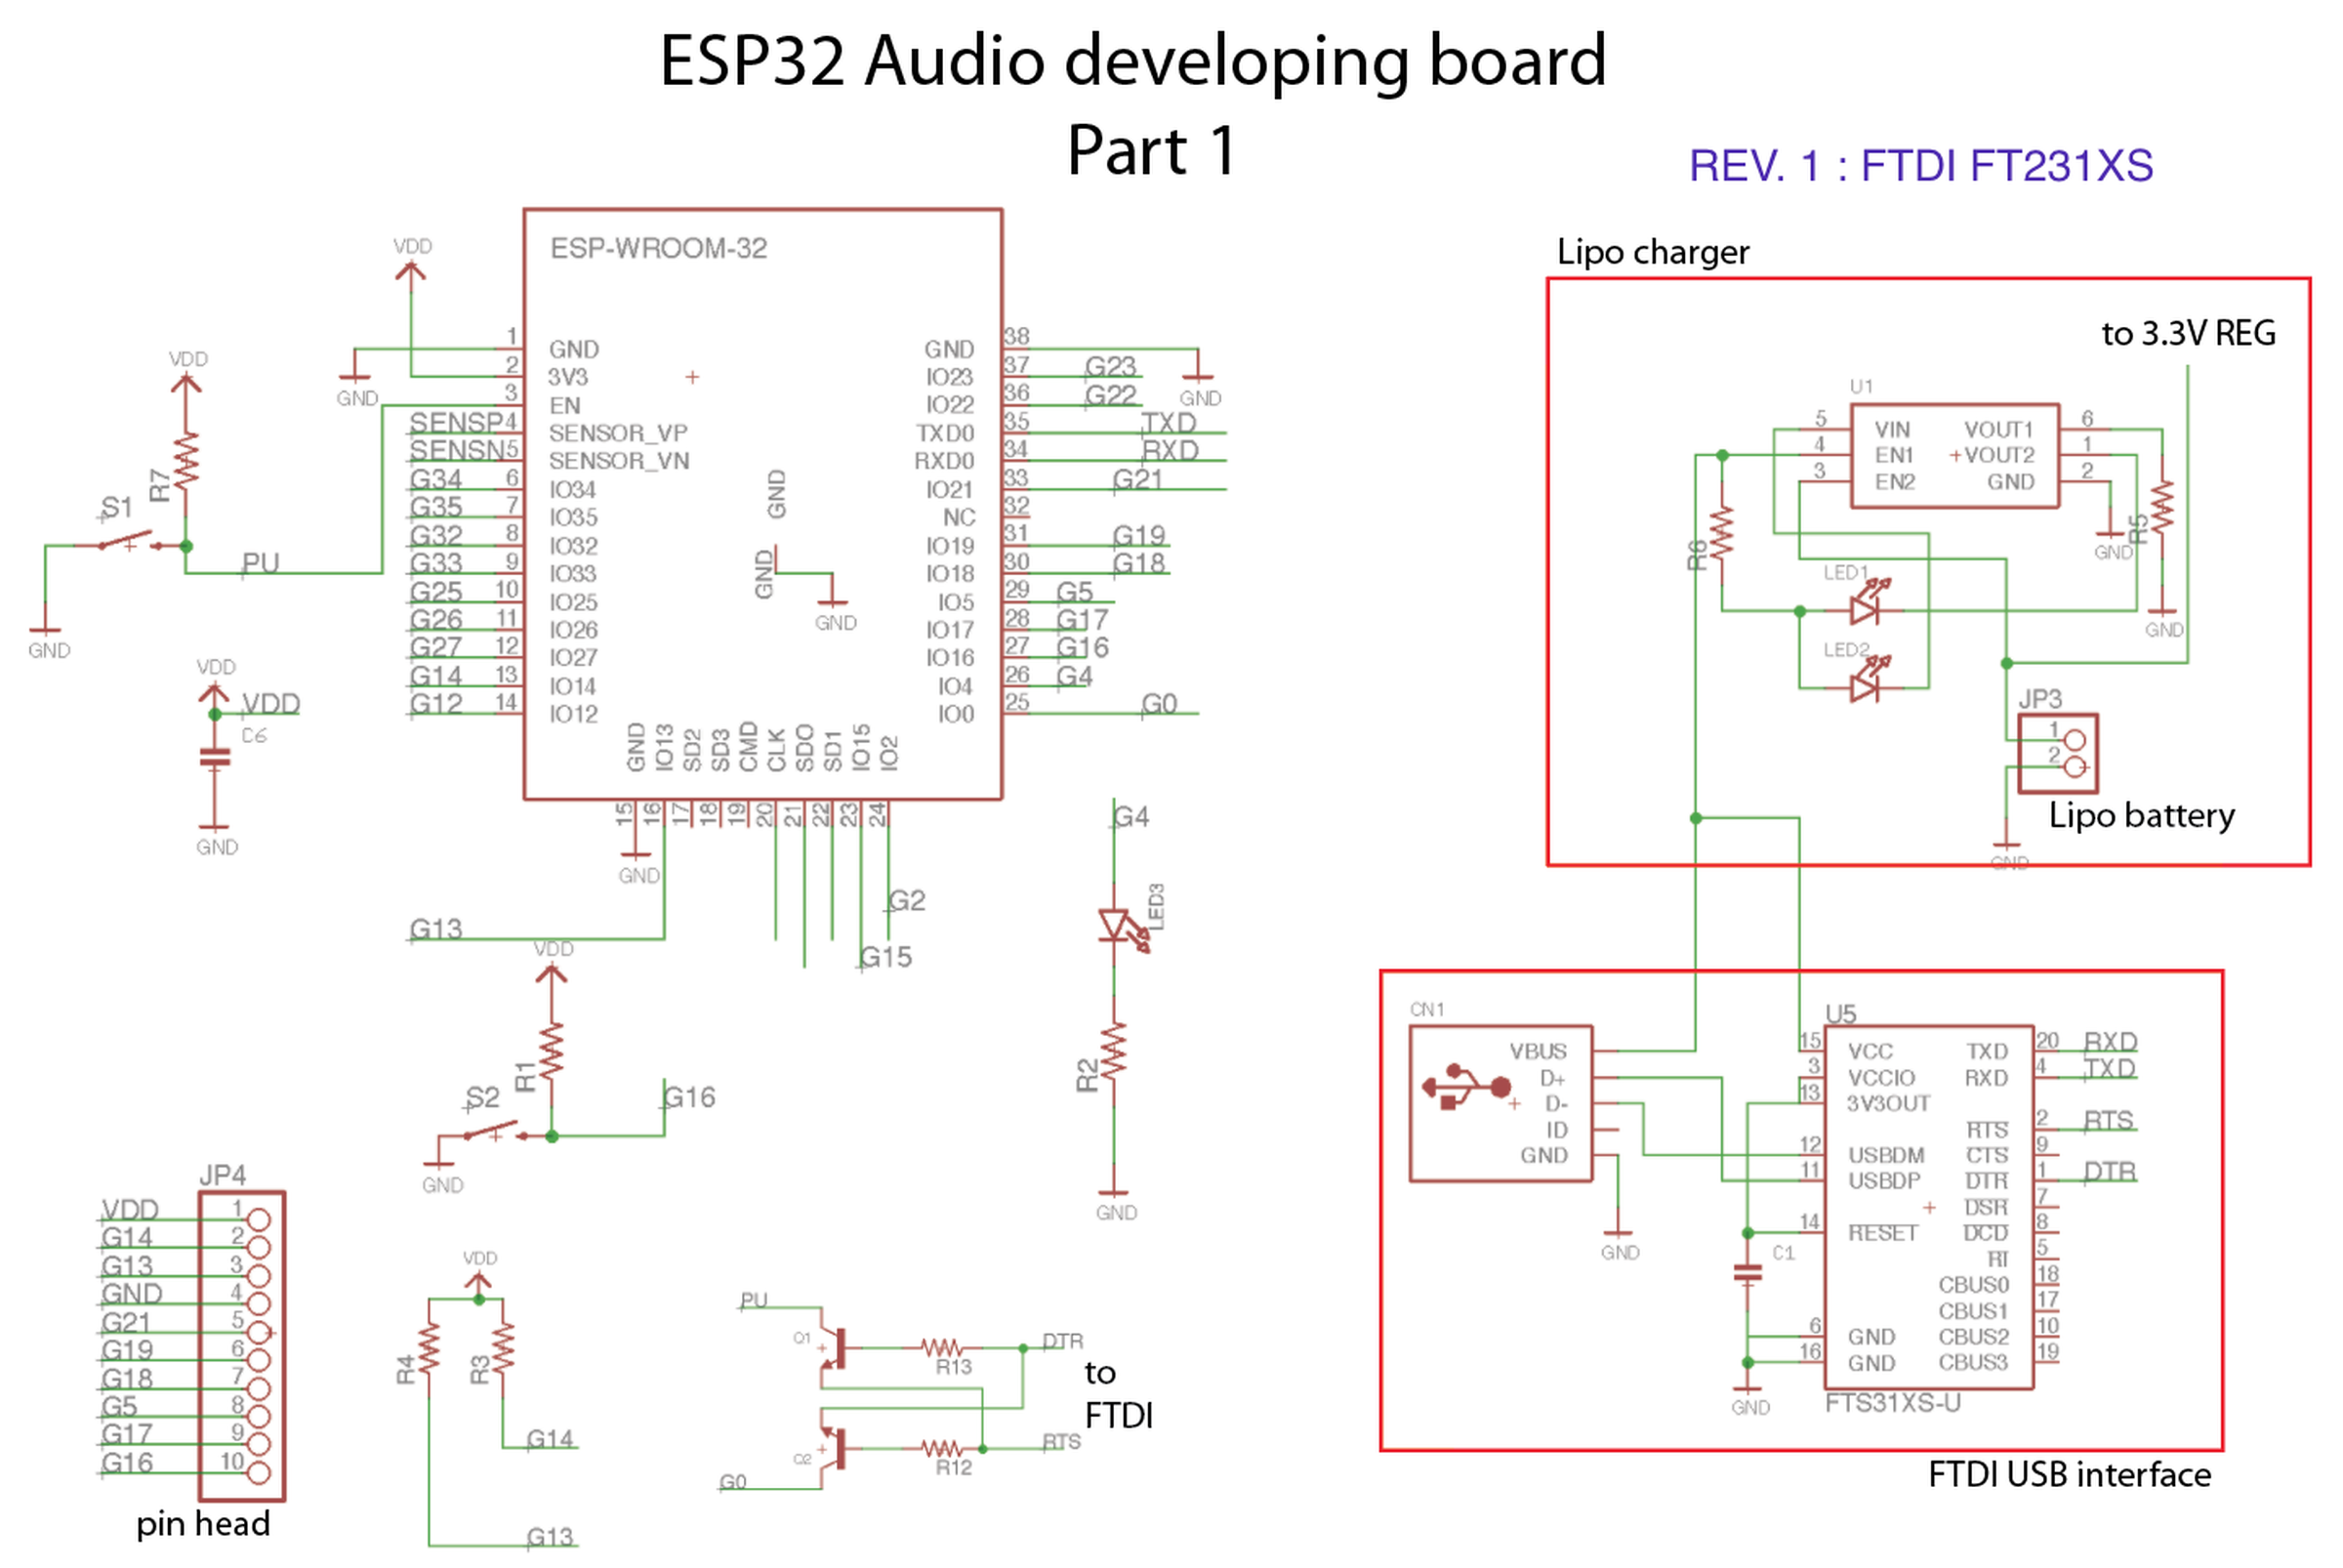 Usb Interface Schematic Esp32 Audio Developing Board Adb From Microwavemont On Tindie 8